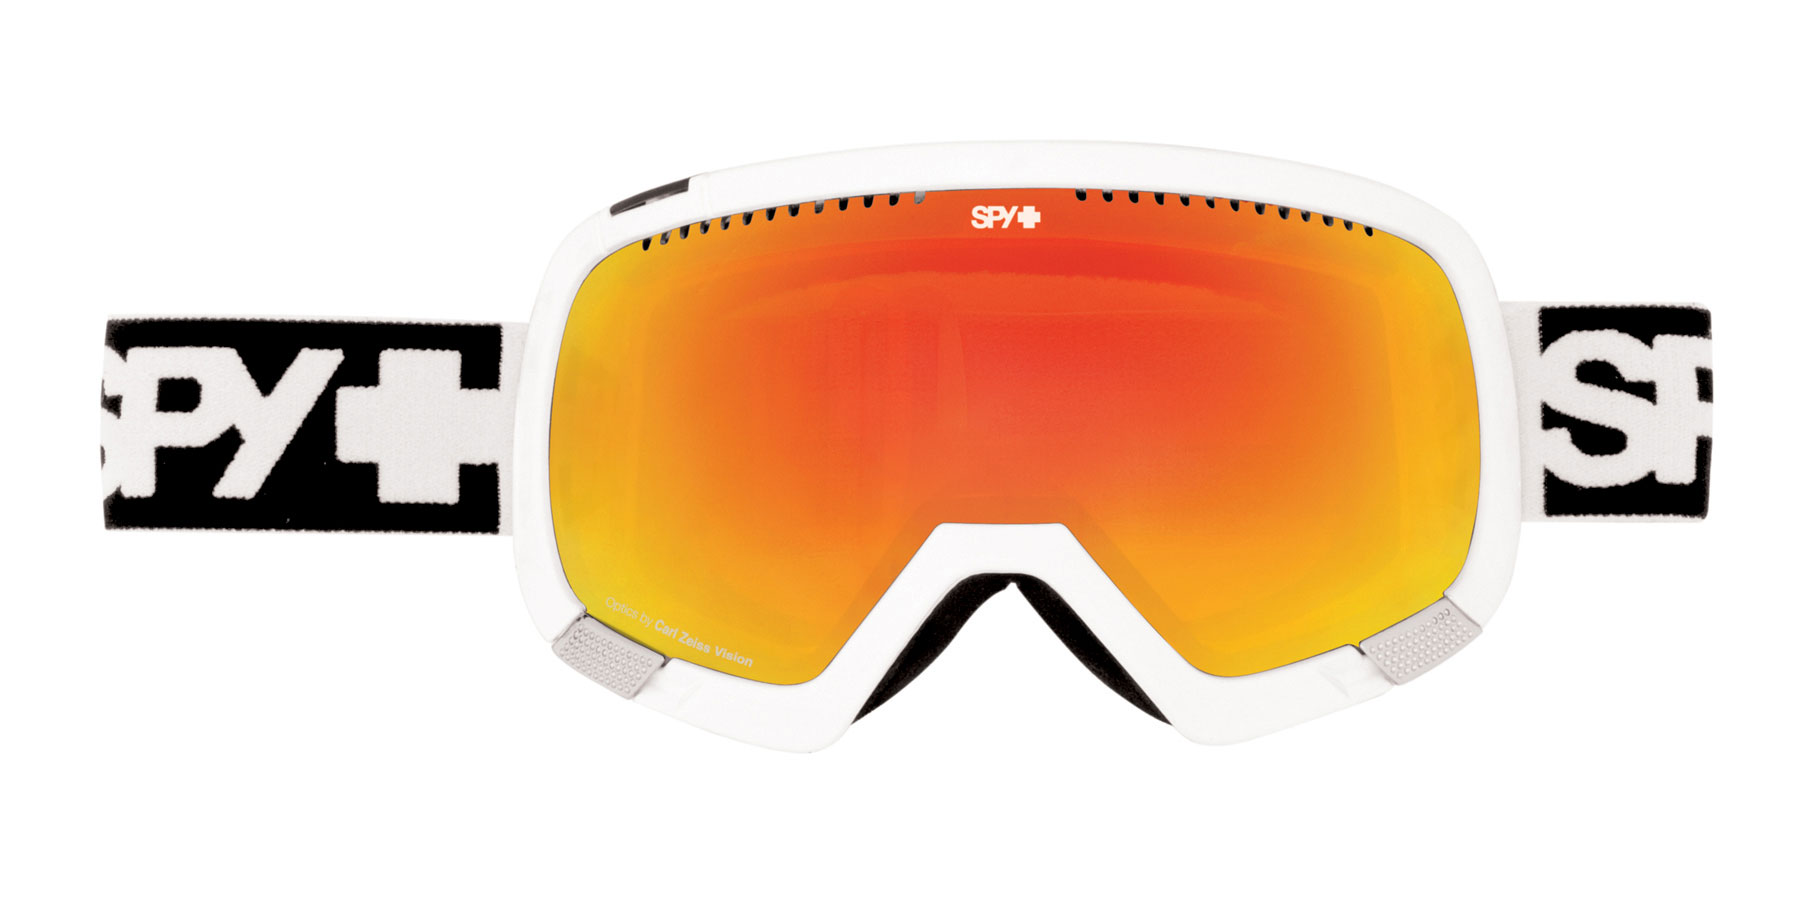 Snowboard Spy added a new member to the family - the Platoon goggle, an oversized compliment to the line comes with a free bonus lens to keep you going in all conditions. The Platoon blends Scoop venting and Optics by Carl Zeiss Vision with a massive view in an oversized fit. Cover your eyes with one; the world has never looked so good The biggest, cleanest, most modern goggle Spy makes. They supply the view, you supply the vision.Key Features of the Spy Platoon Snowboard Goggles: Optics by Carl Zeiss Vision Free Bonus Lens Oversized, flexible frame conforms to any face for a comfortable fit Patented Scoop ventilation system to combat lens fogging 5.5-Base ARC spherical dual lens with anti-fog & anti-scratch protection Triple Layer Isotron face foam featuring moisture-wicking Dri-Force fleece Dual-adjustment, silicone-ribbed strap 100% UV protection - $104.95